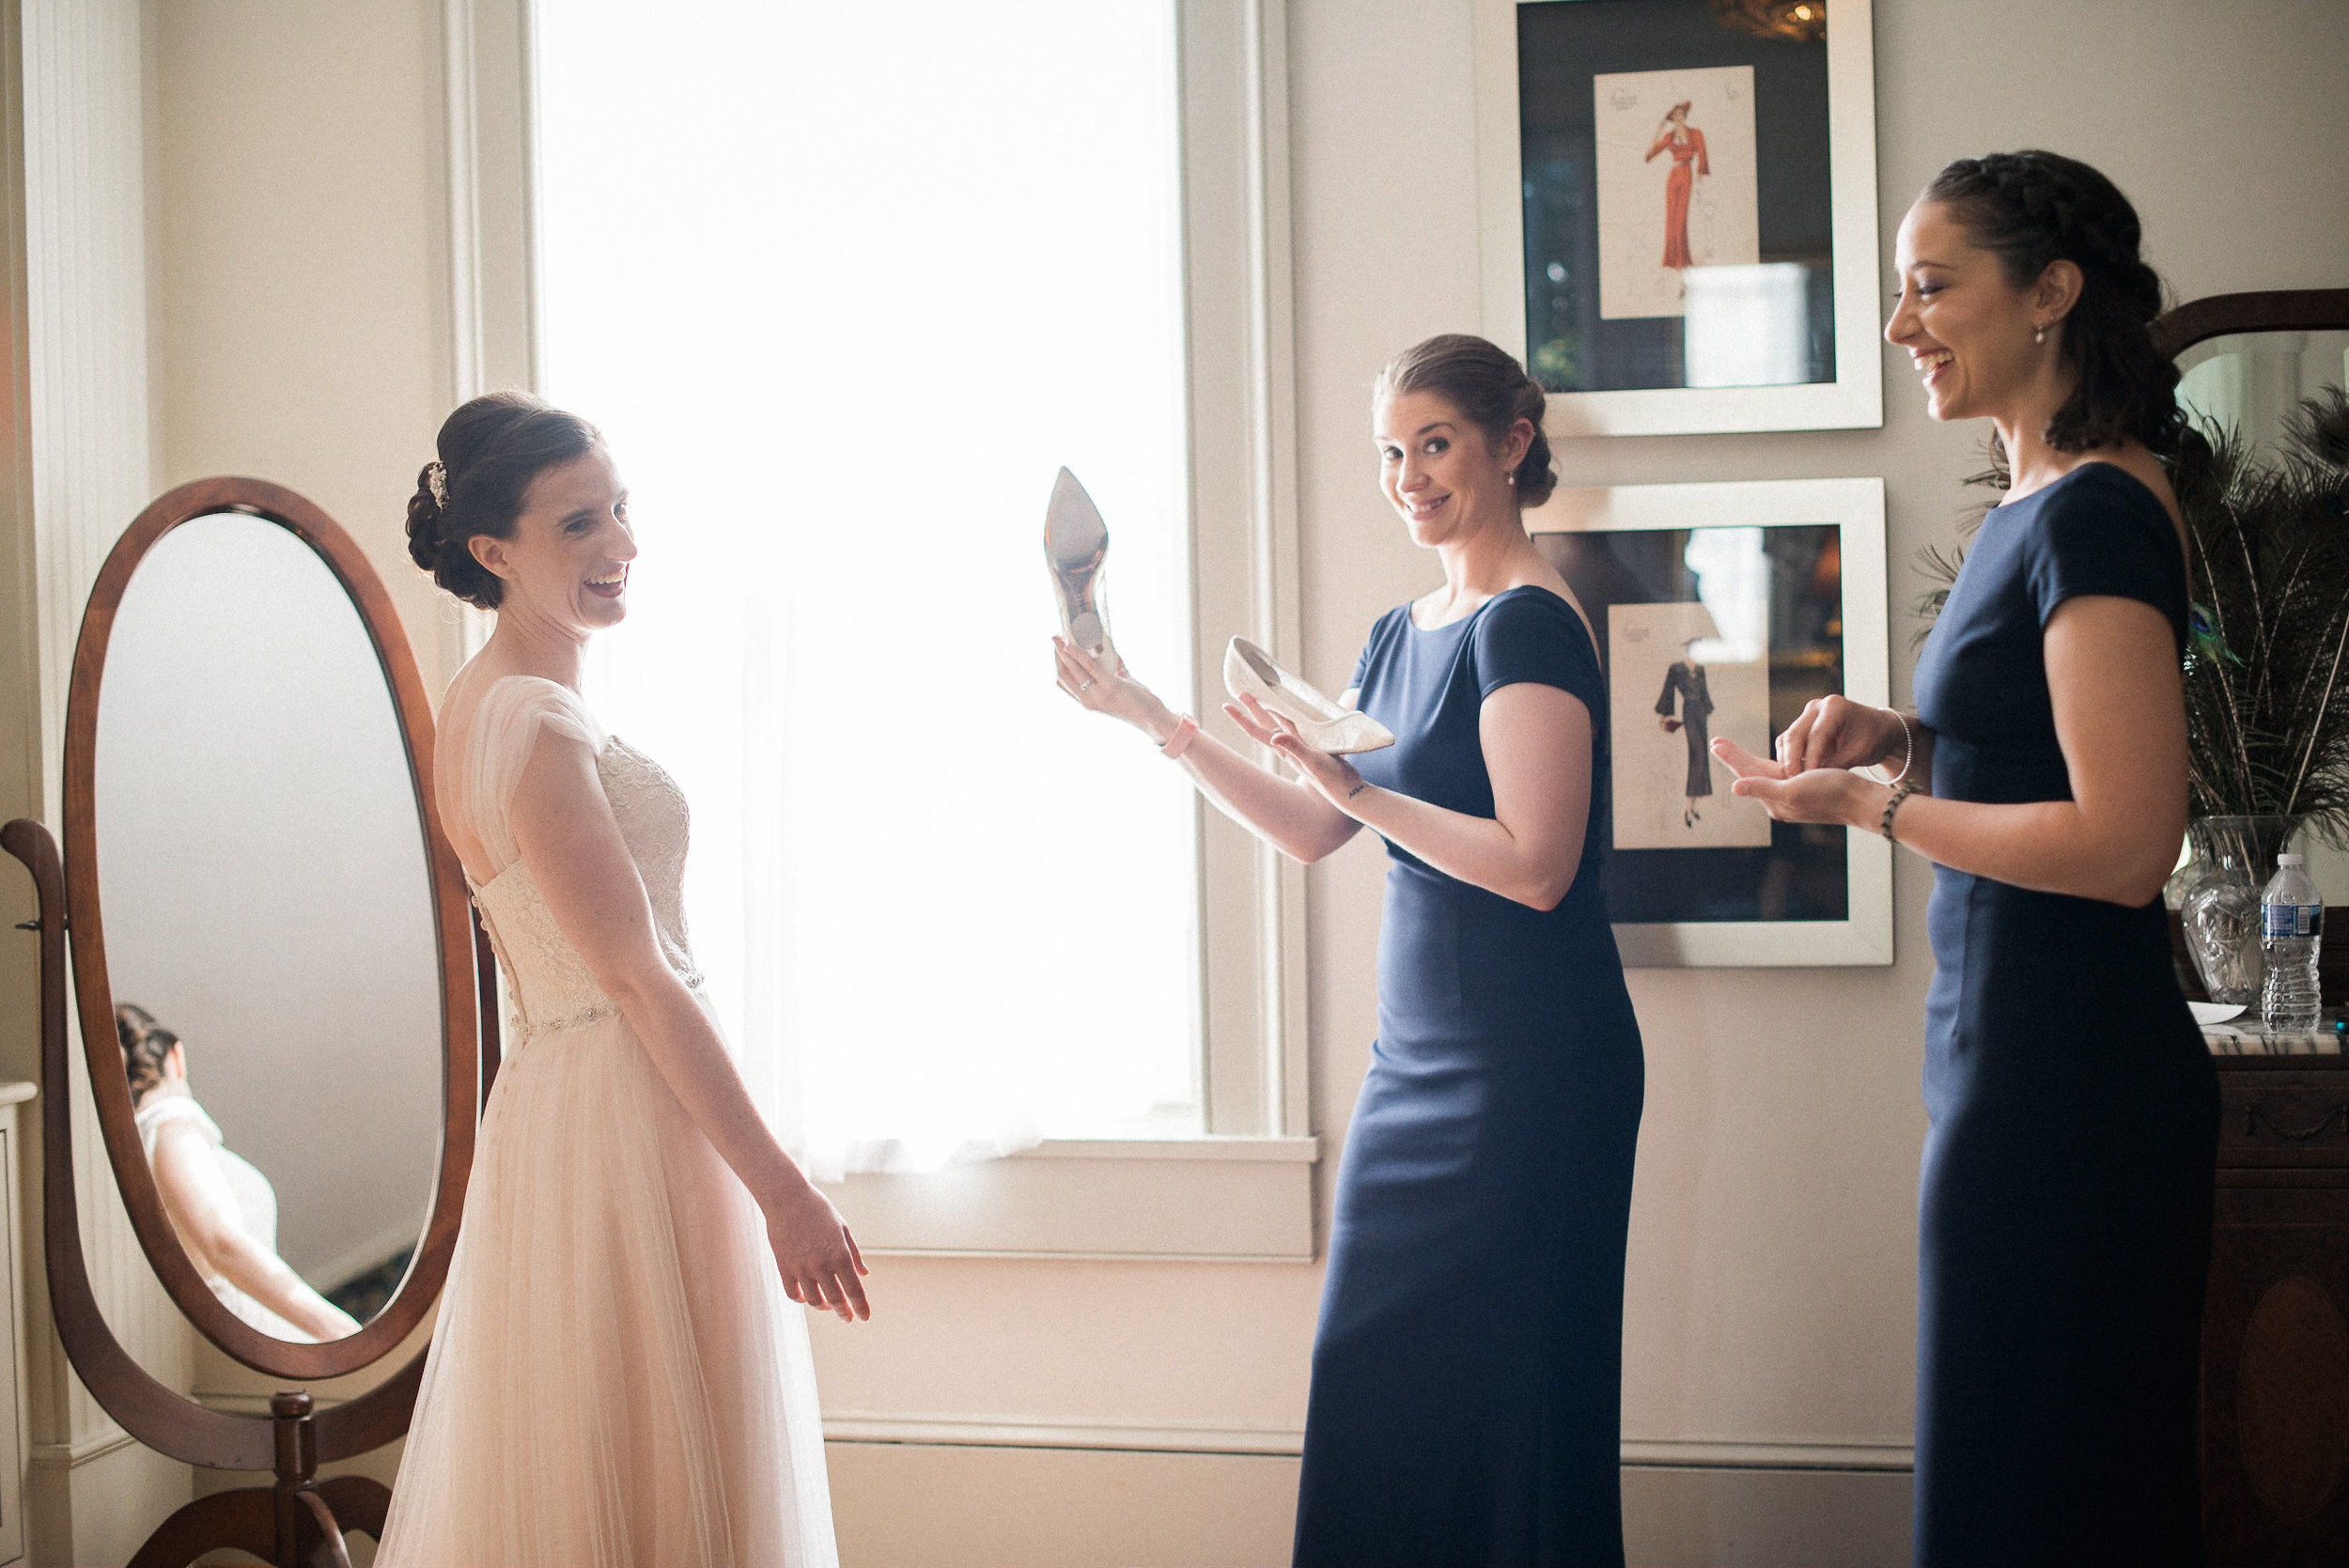 Bridesmaids giving bride shoes